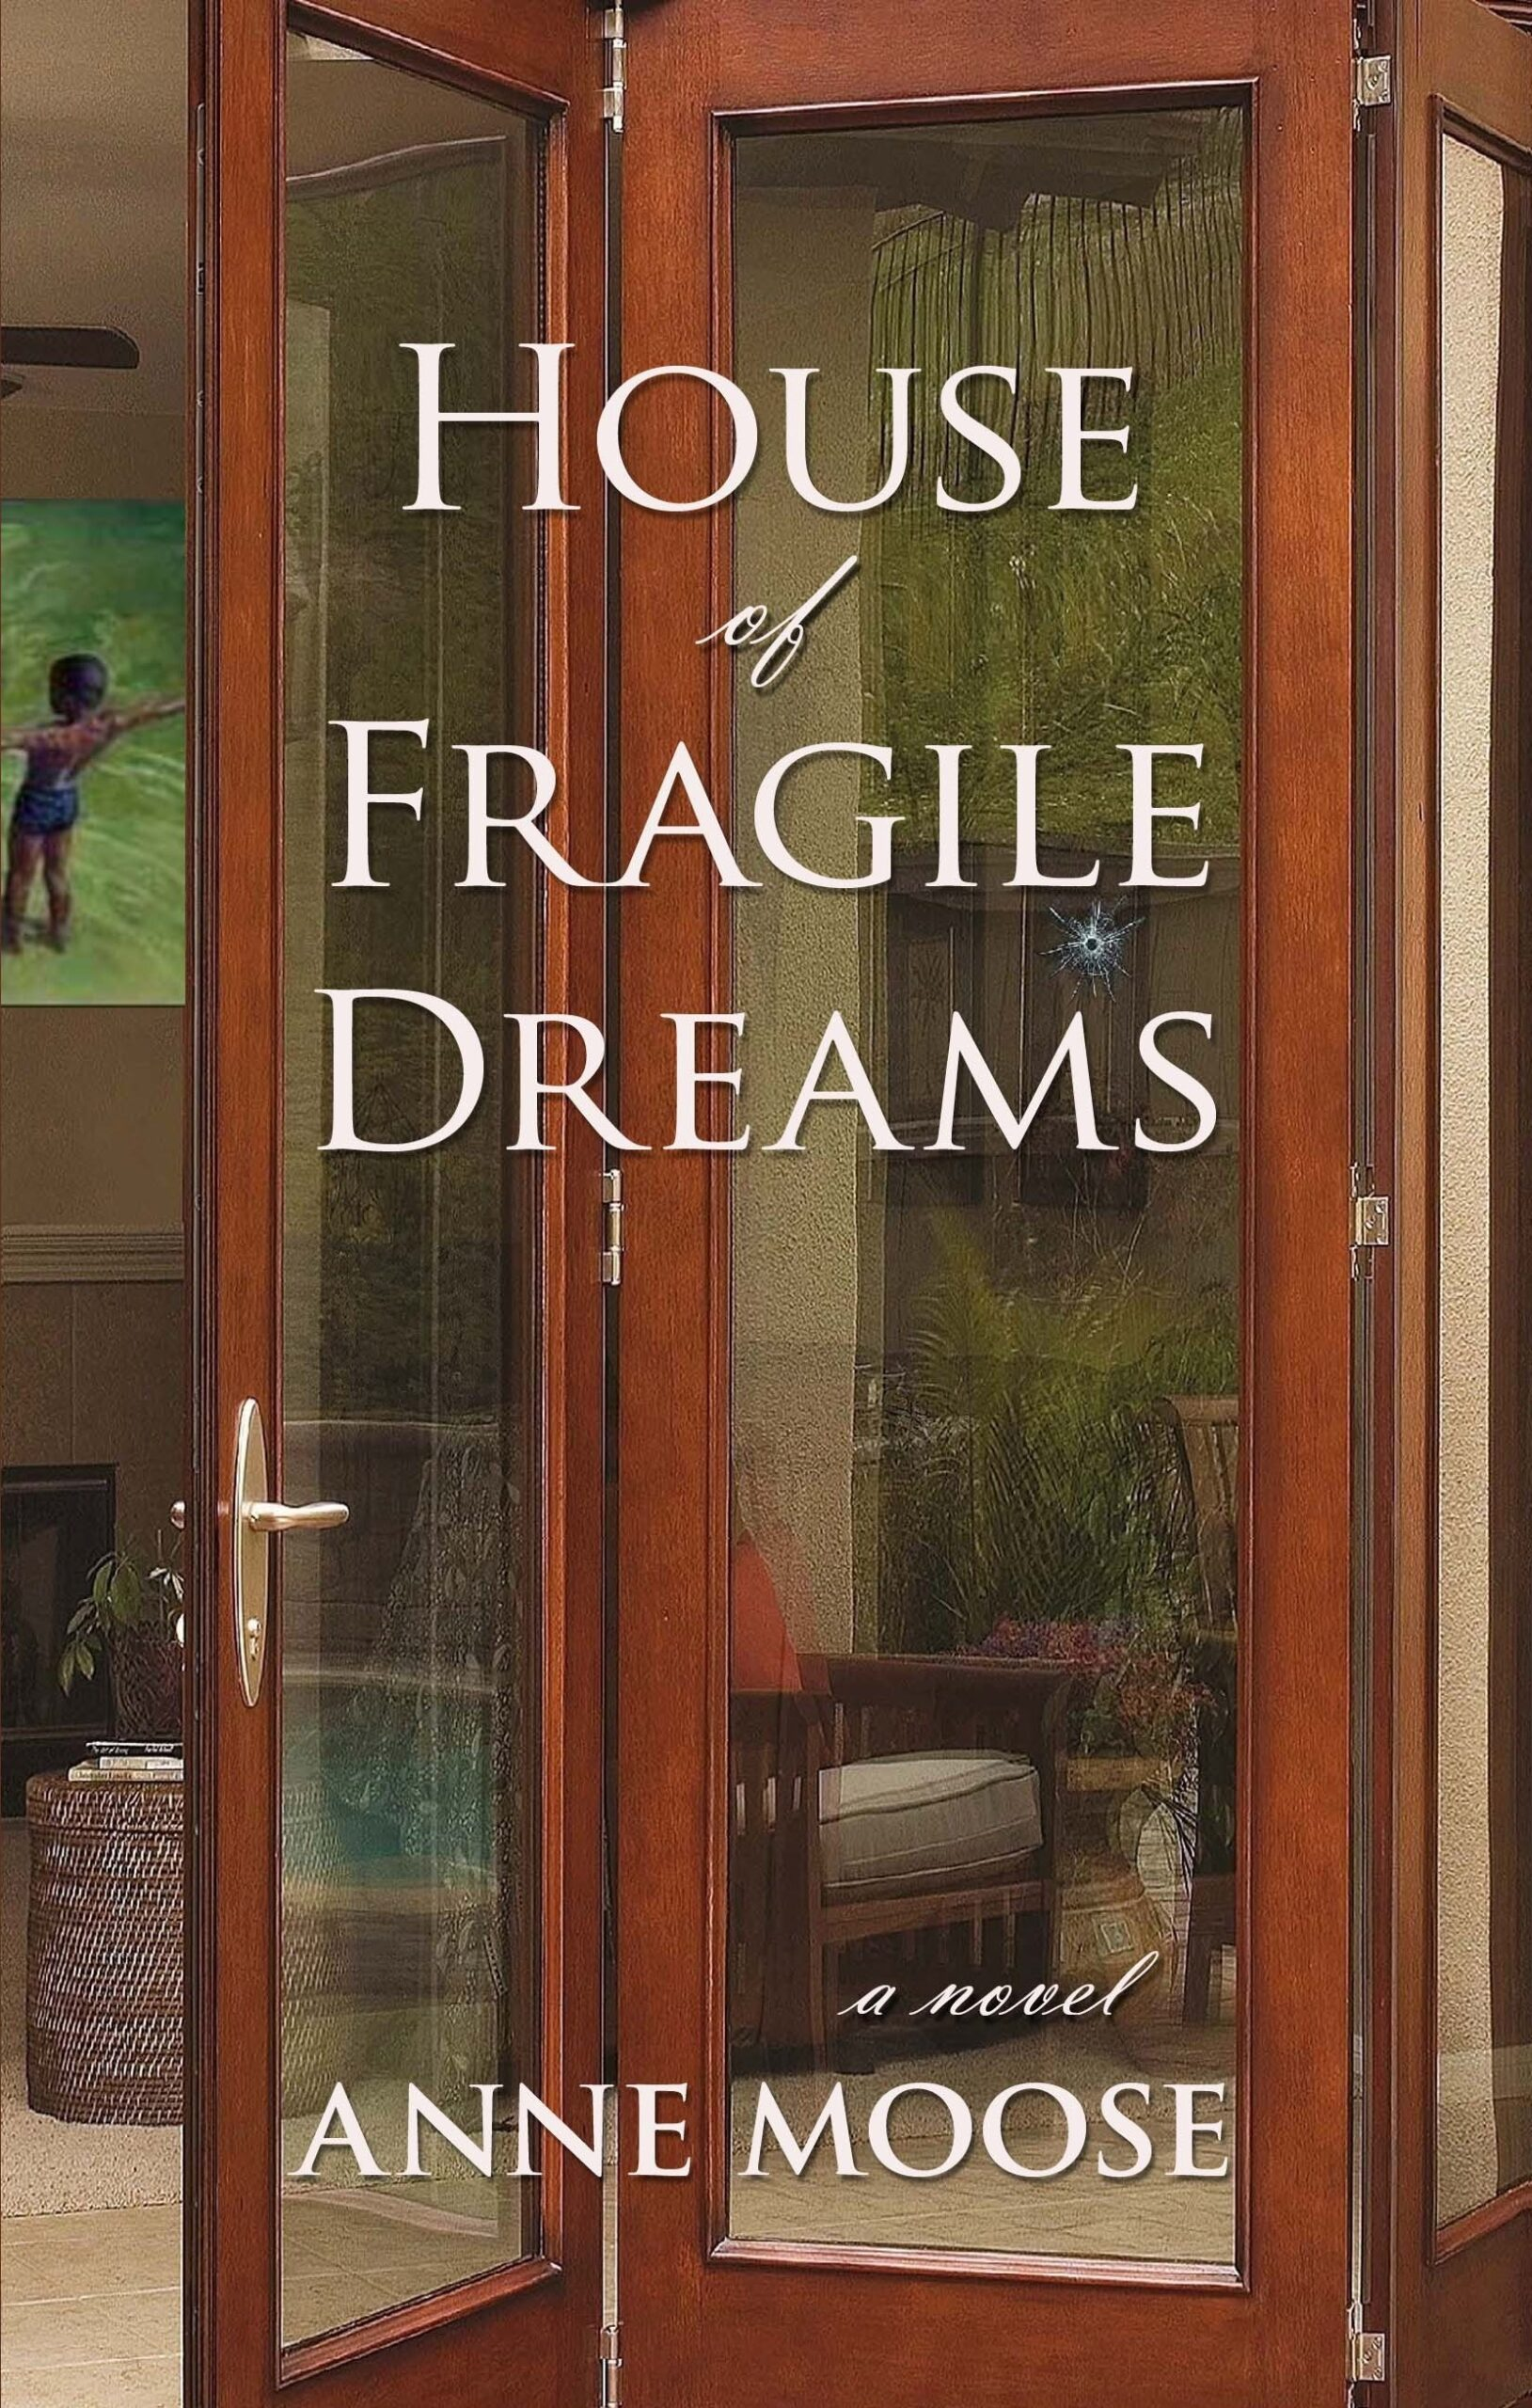 JUNE-11-HOUSE-OF-FRAGILE-DREAMS-FINAL-FRONT-COVER